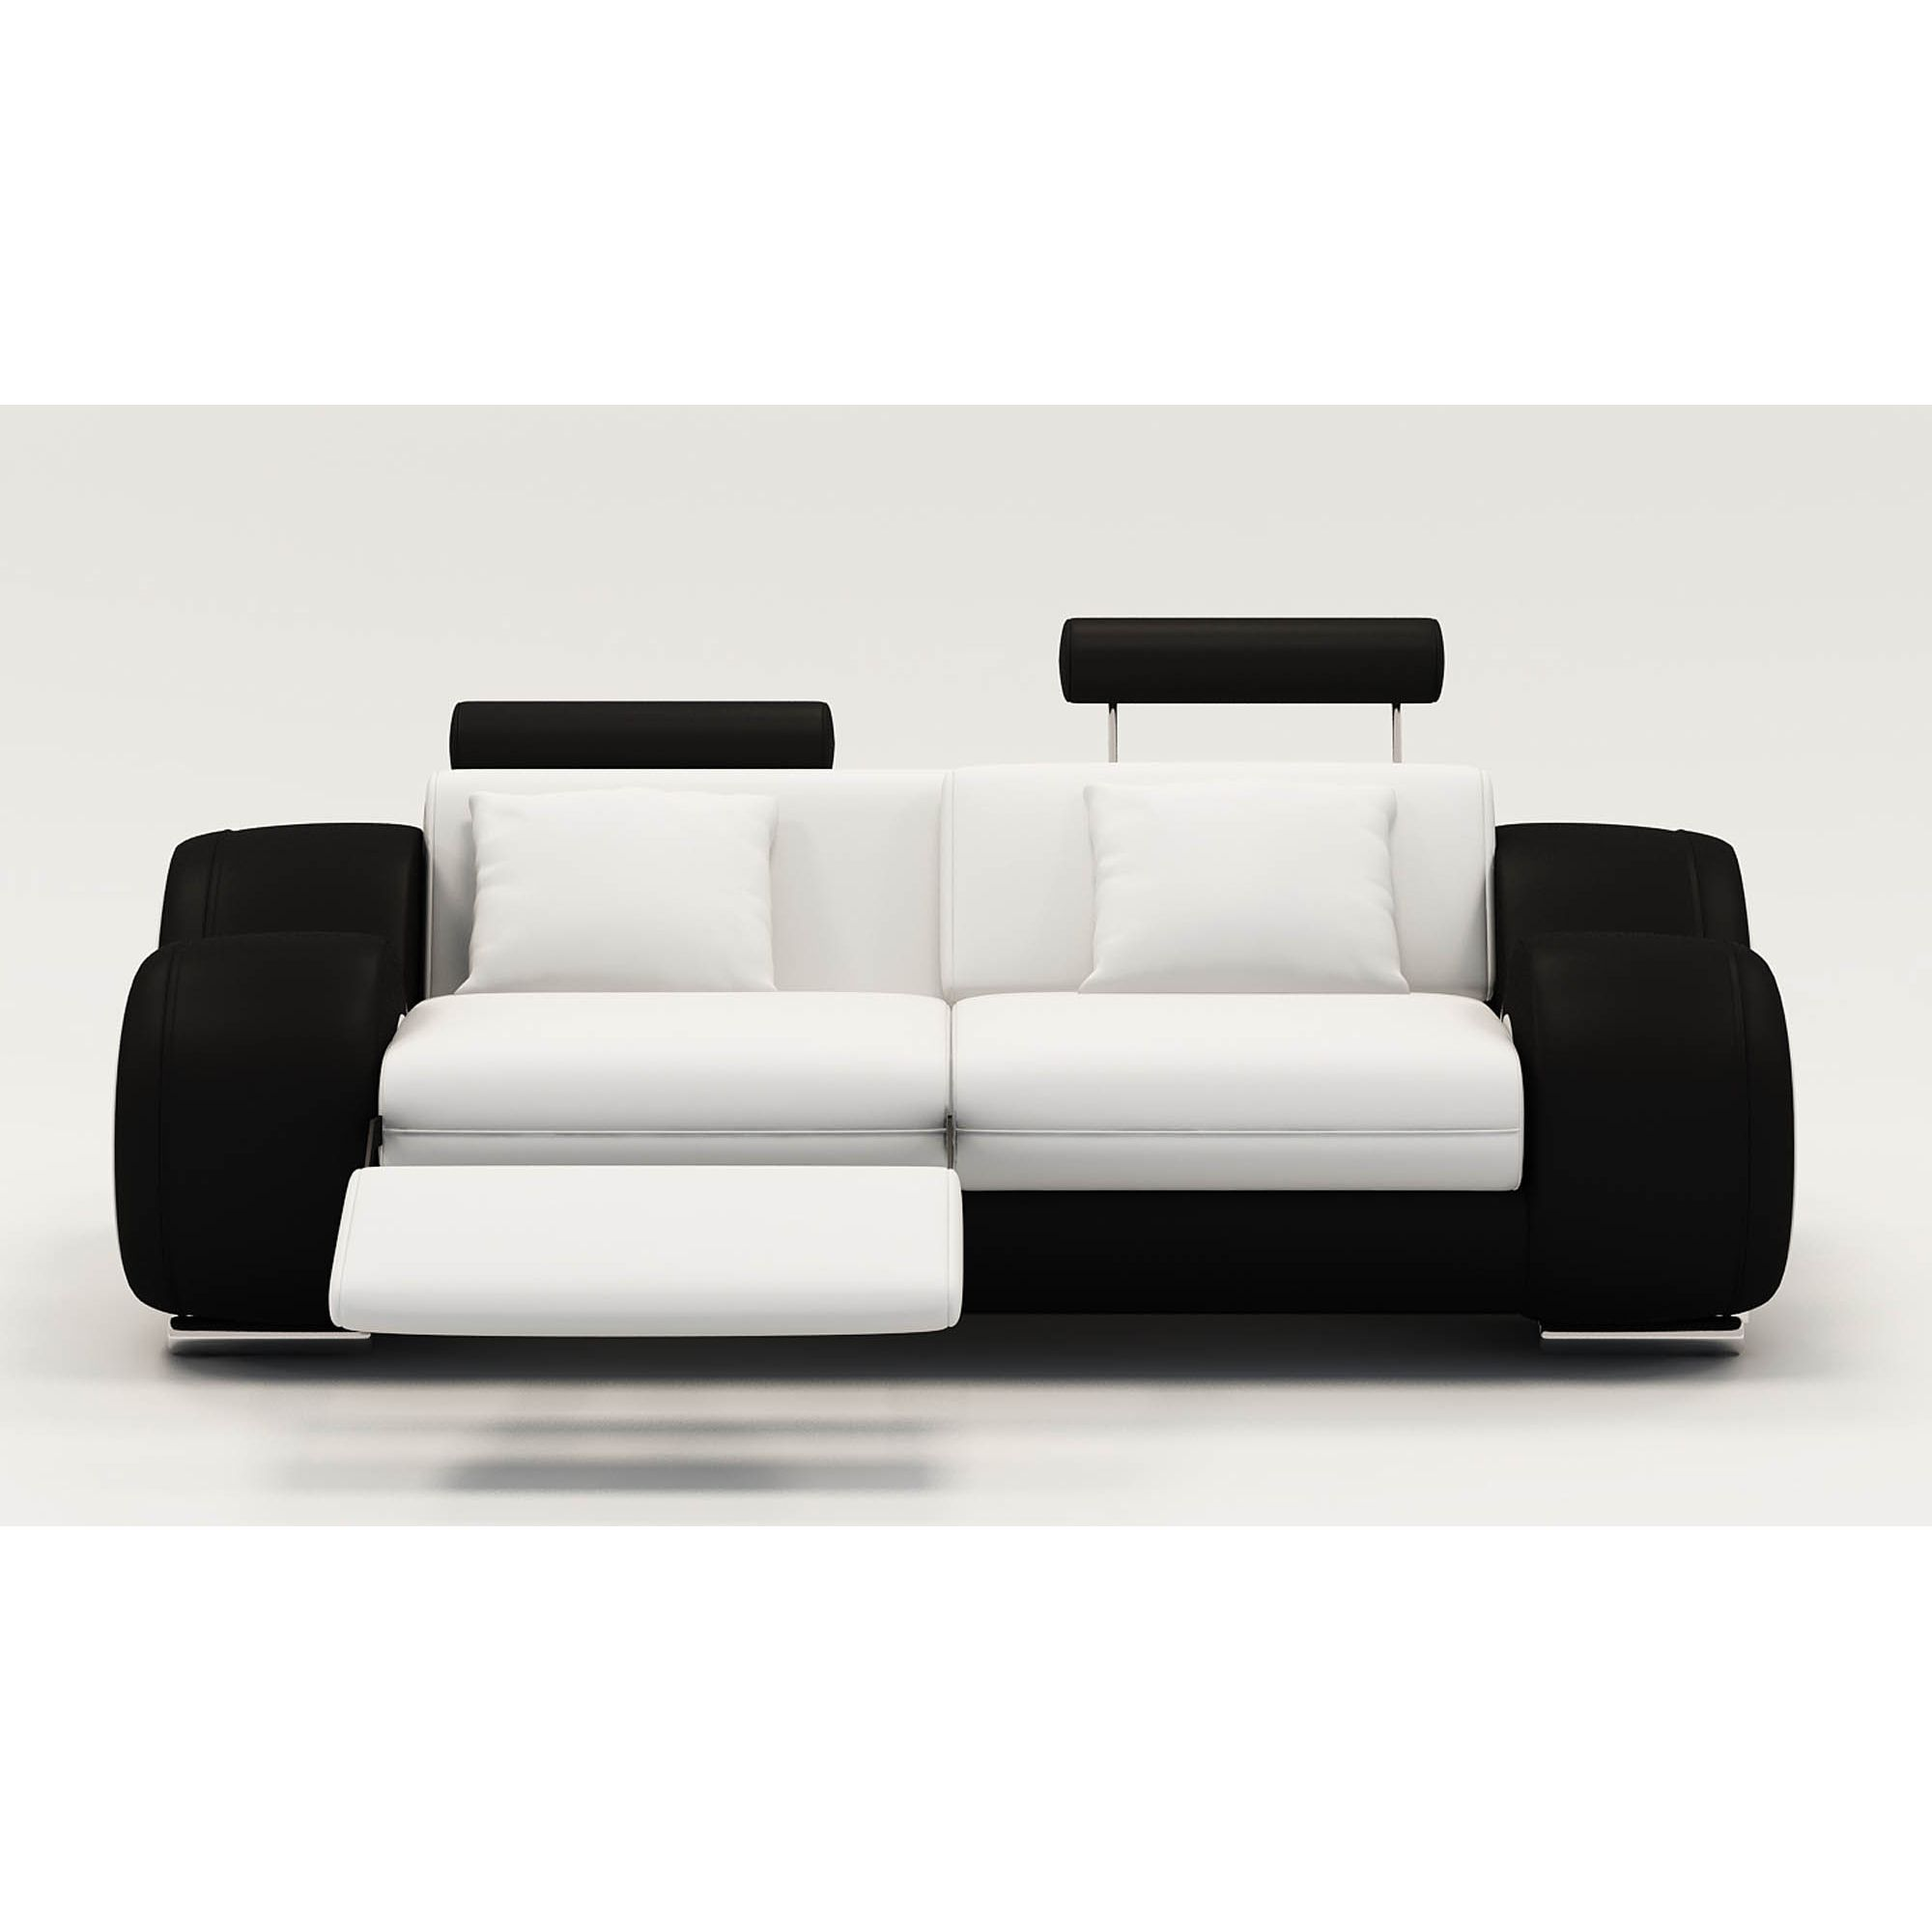 Deco in paris canape 2 places design relax oslo en cuir blanc et noir 2pl b - Canape 2 places blanc ...